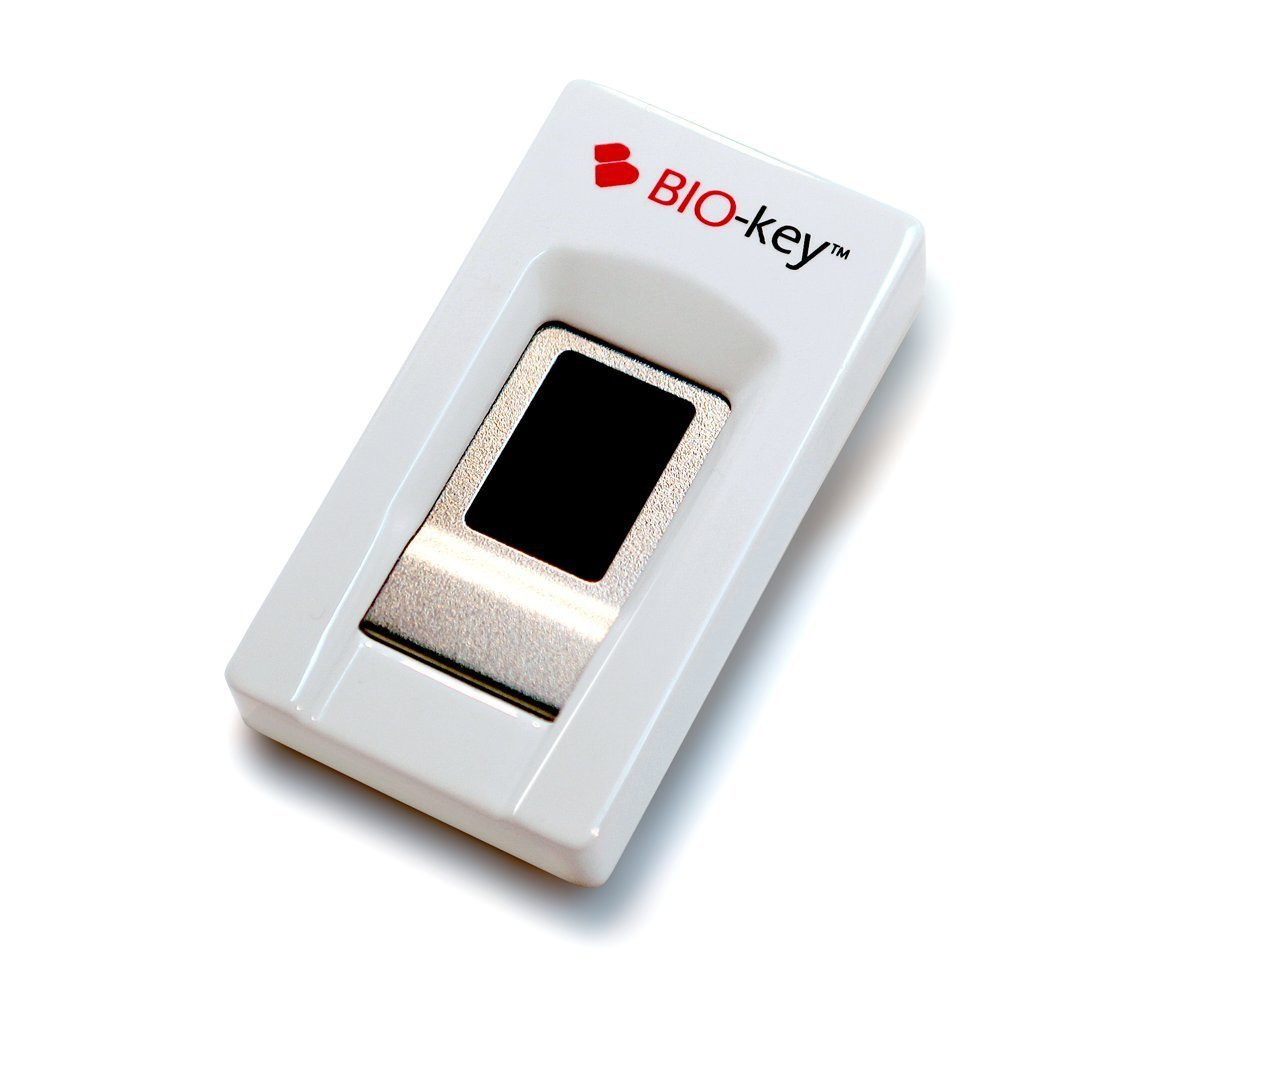 BIO-key EcoID Fingerprint Reader - Tested & Qualified by Microsoft for Windows Hello - Eliminate Passwords on Windows 7/8.1/10 - Includes OmniPass Online Password Vault with Purchase by BIO-key